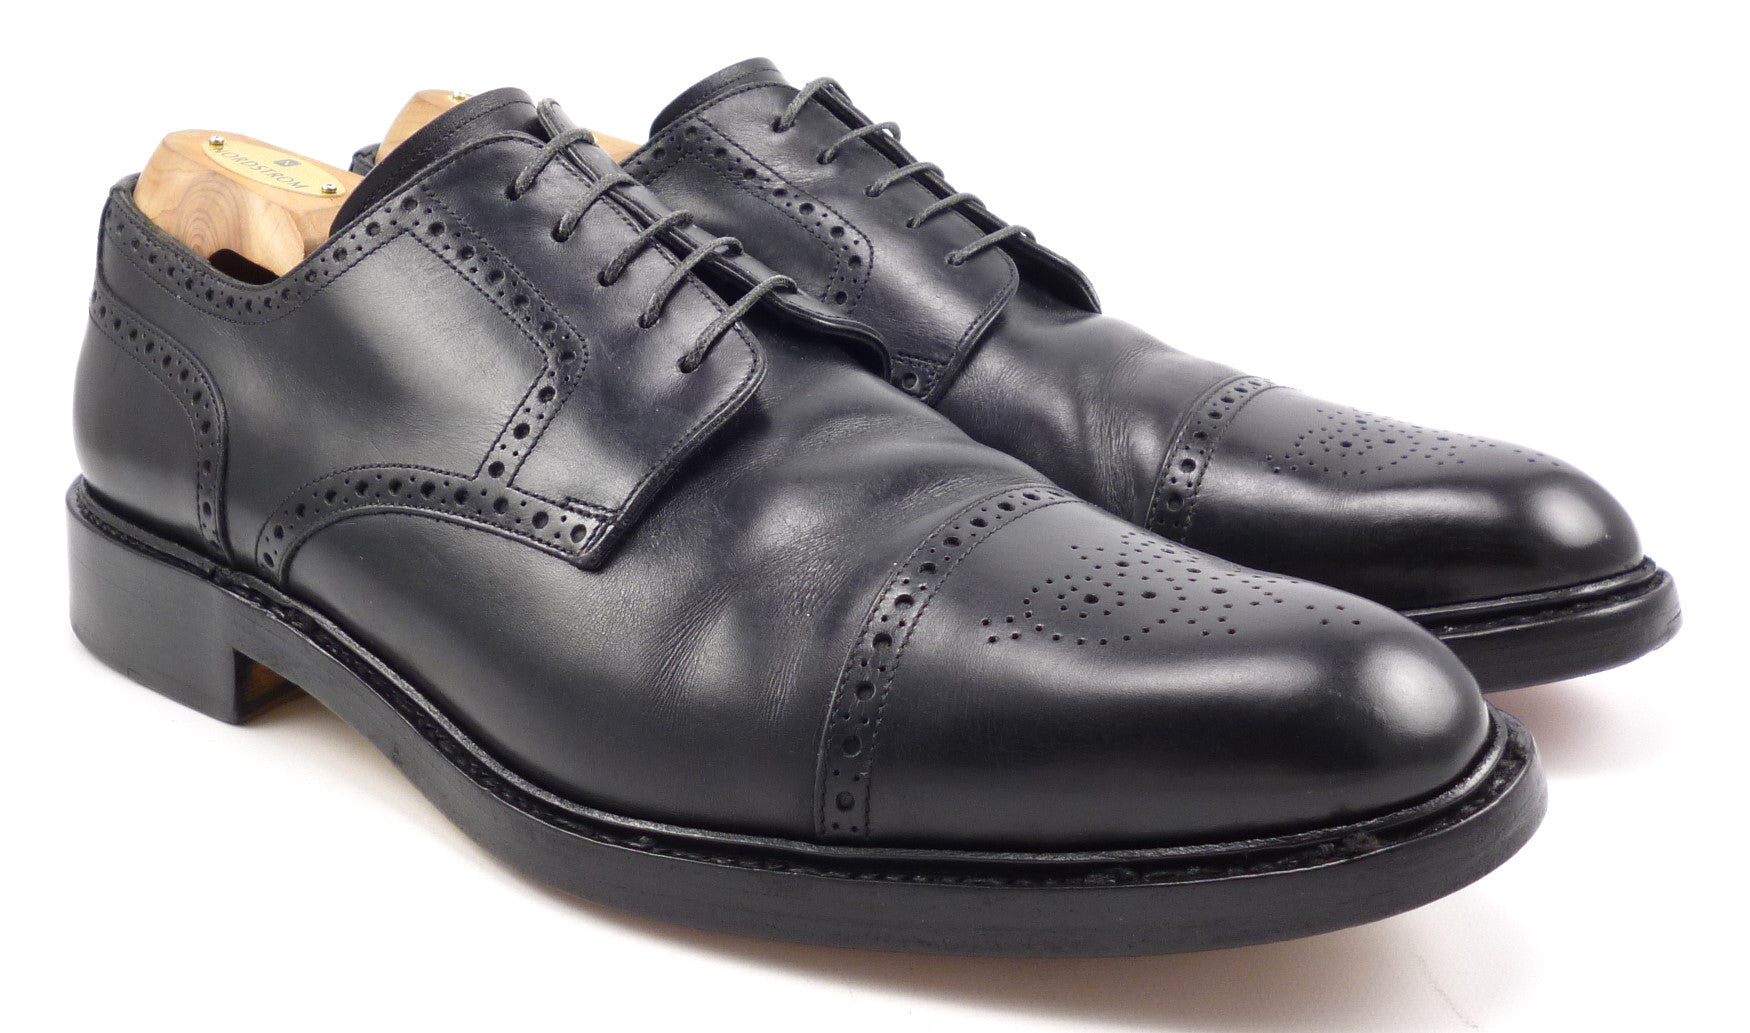 Santoni Mens Shoes 11.5 Leather Cap Toe Lace Up Oxfords Black